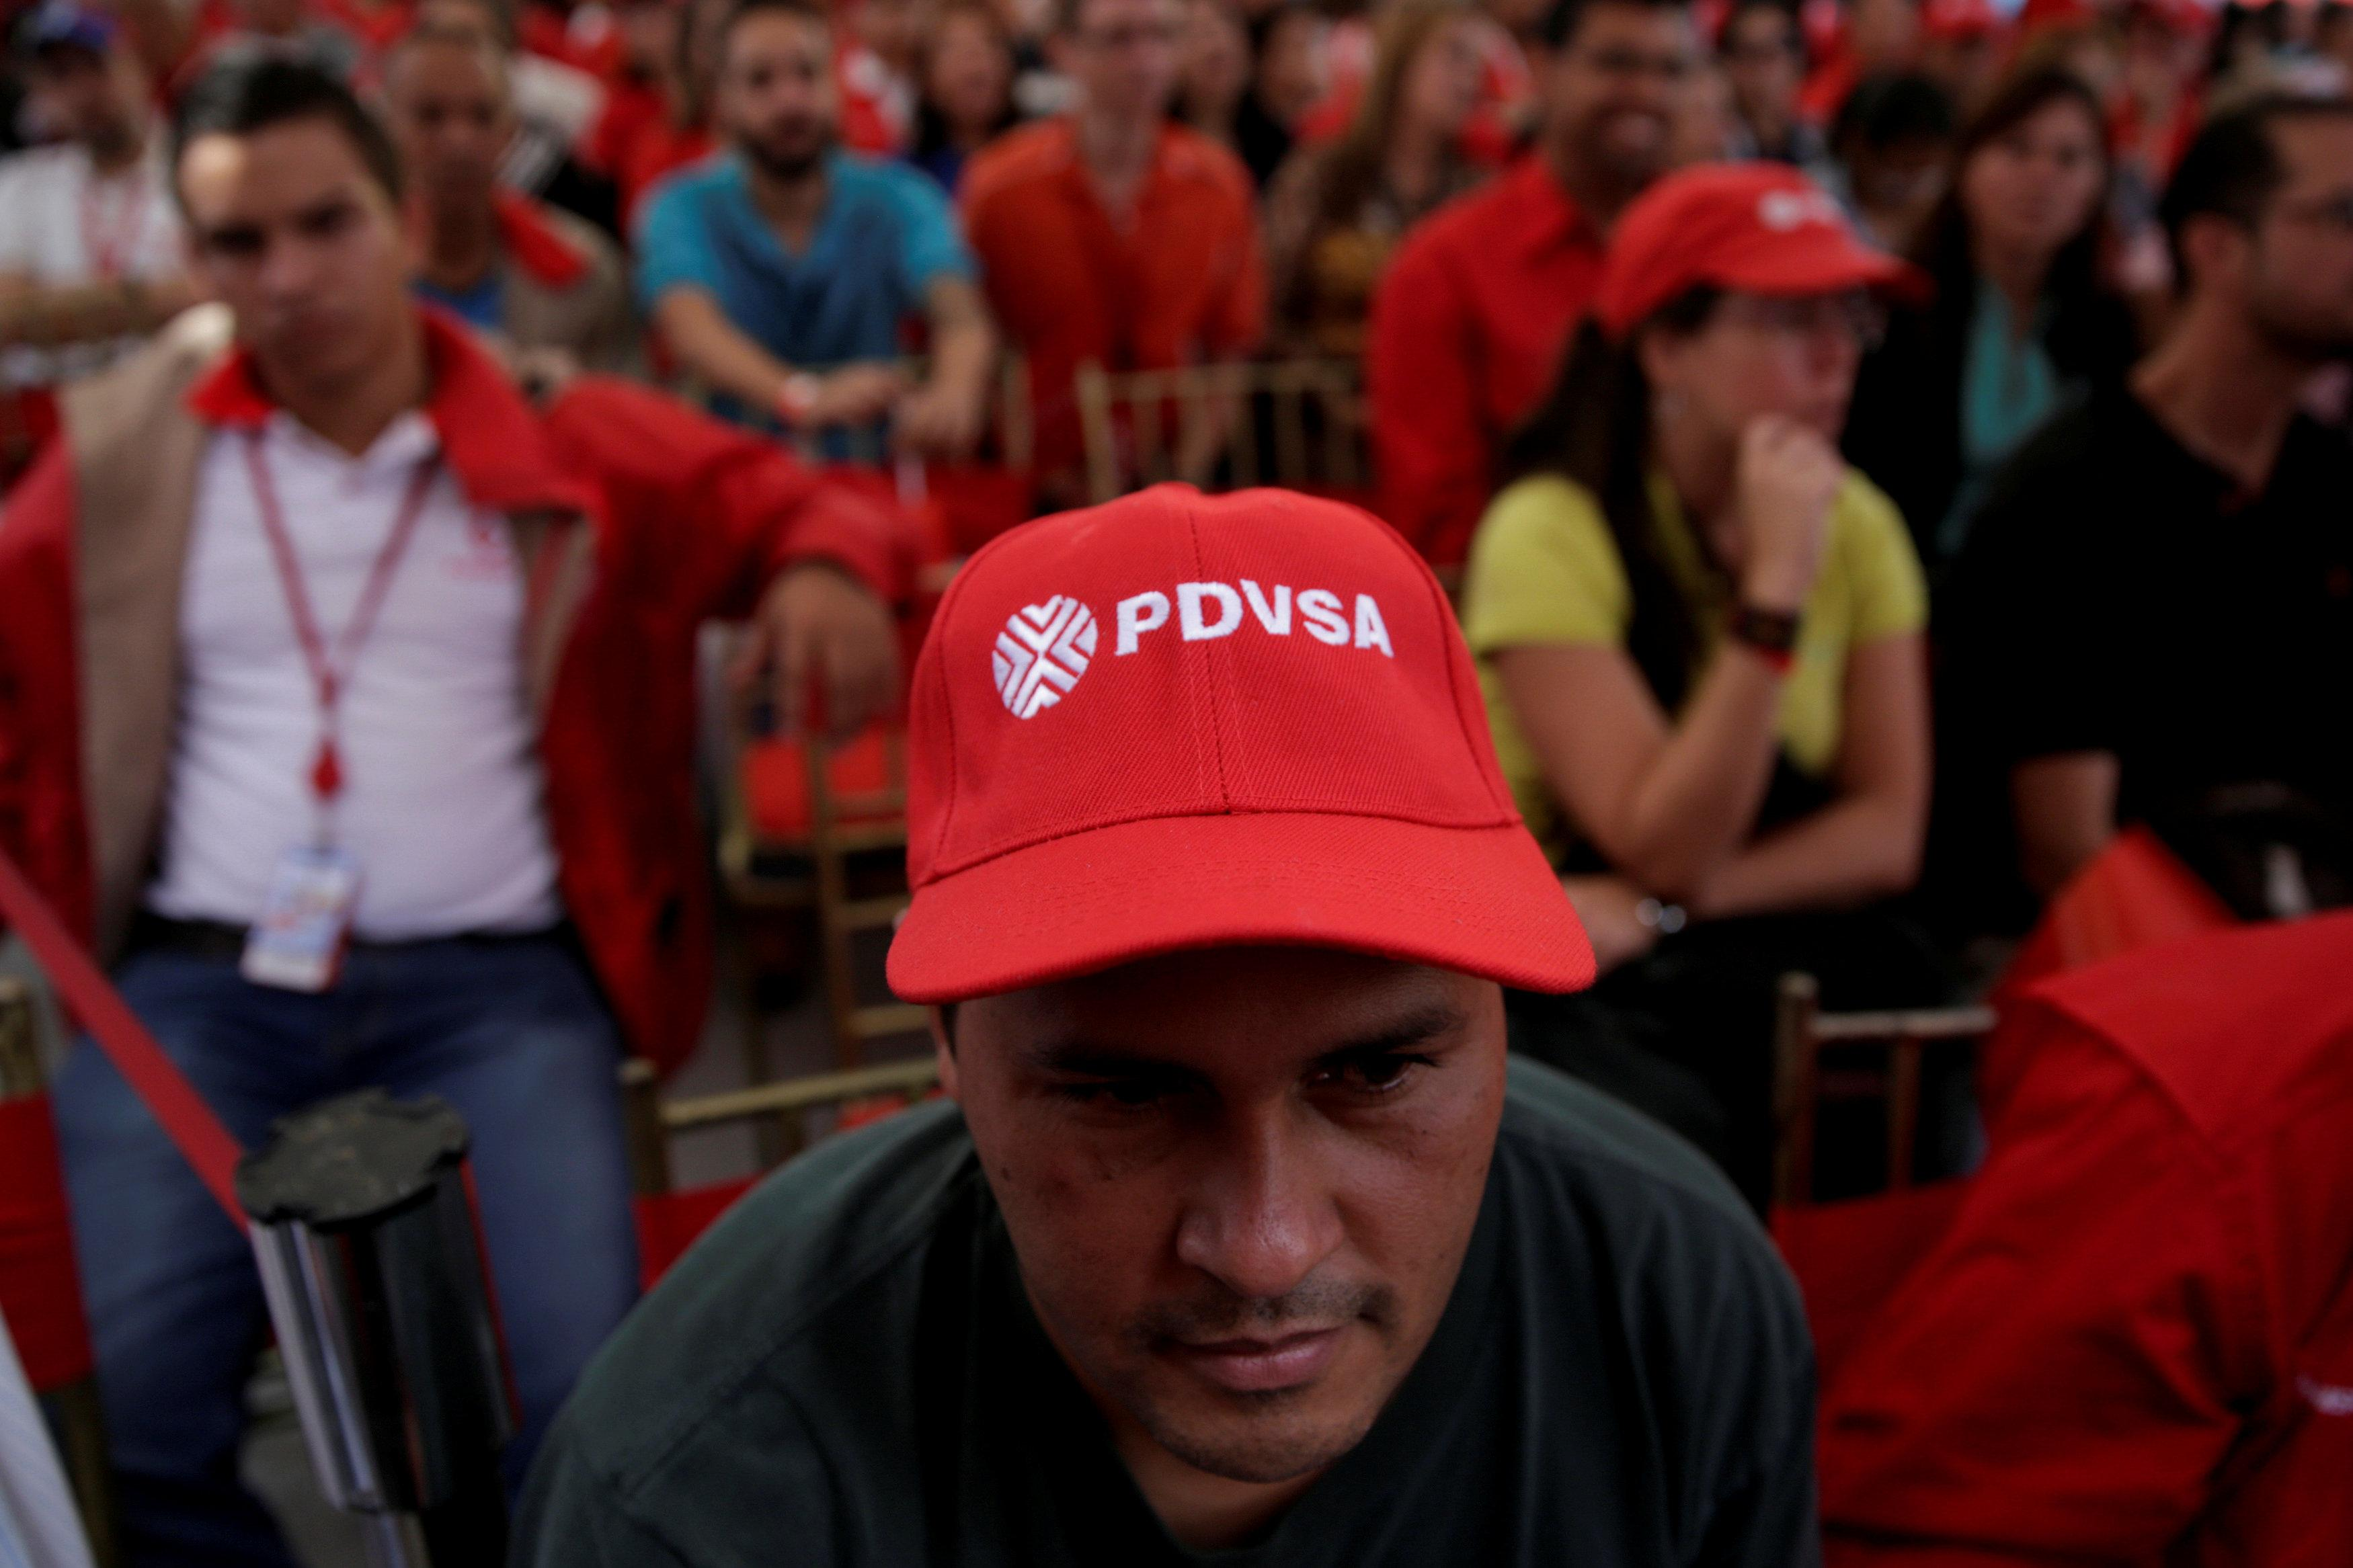 A man wears a cap with the logo of PDVSA as he attends the swear-in ceremony of the new board of directors of Venezuelan state oil company PDVSA in Caracas, Venezuela January 31, 2017. Marco Bello